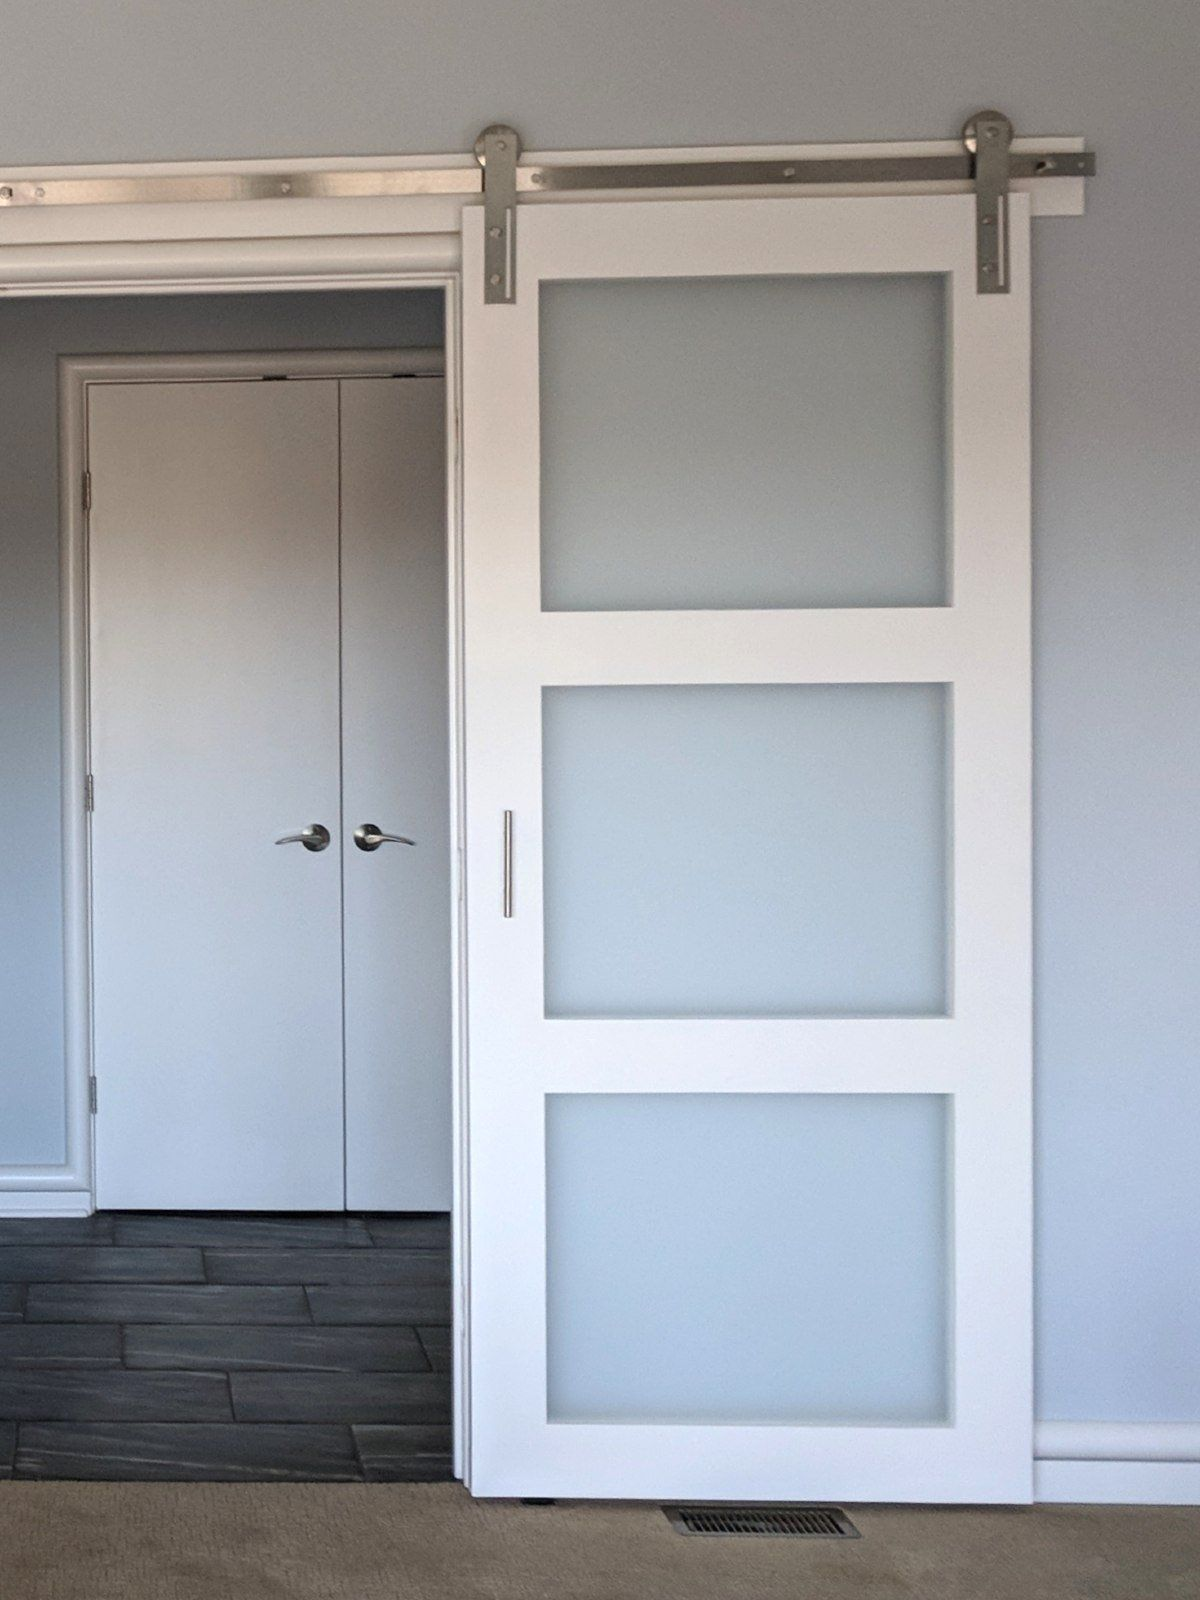 Glass Barn Door Sliding 3 Panel Glass Barn Doors Garage Door Design Barn Doors Sliding